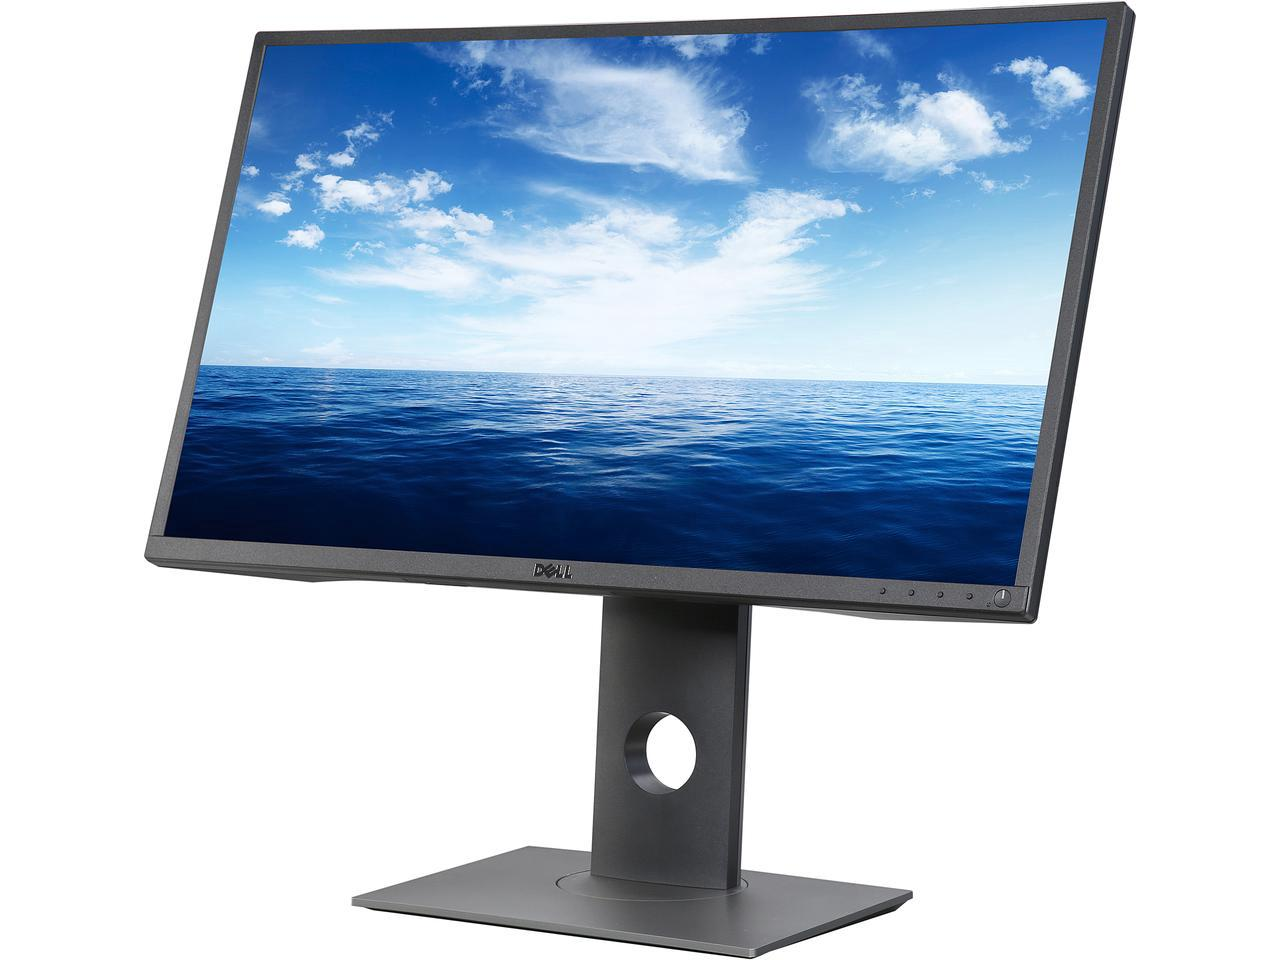 "(Used - Like New) Dell Professional Series P2717H 27"" Black IPS LED Monitor 1920 x 1080 Widescreen 16:9 6ms Response Time 250 cd/m2 1000:1 HDMI VGA DisplayPort"